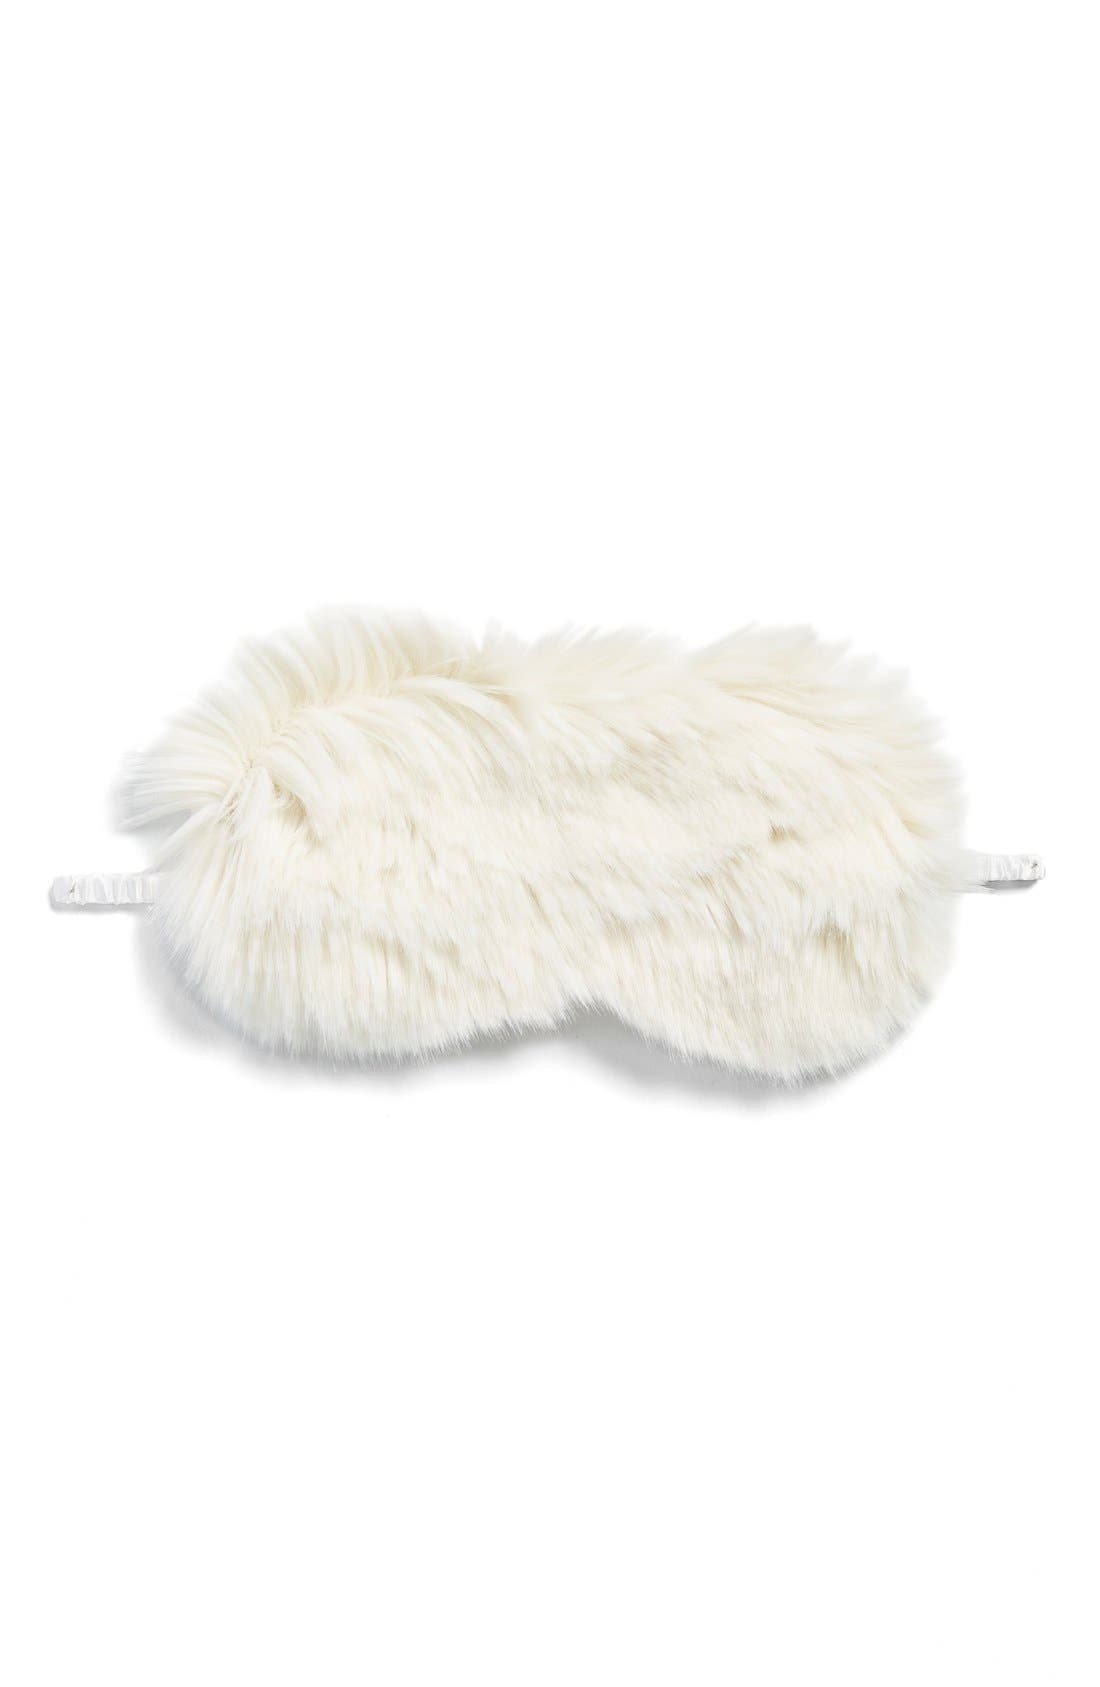 Nordstrom Faux Fur Eye Mask,                             Main thumbnail 4, color,